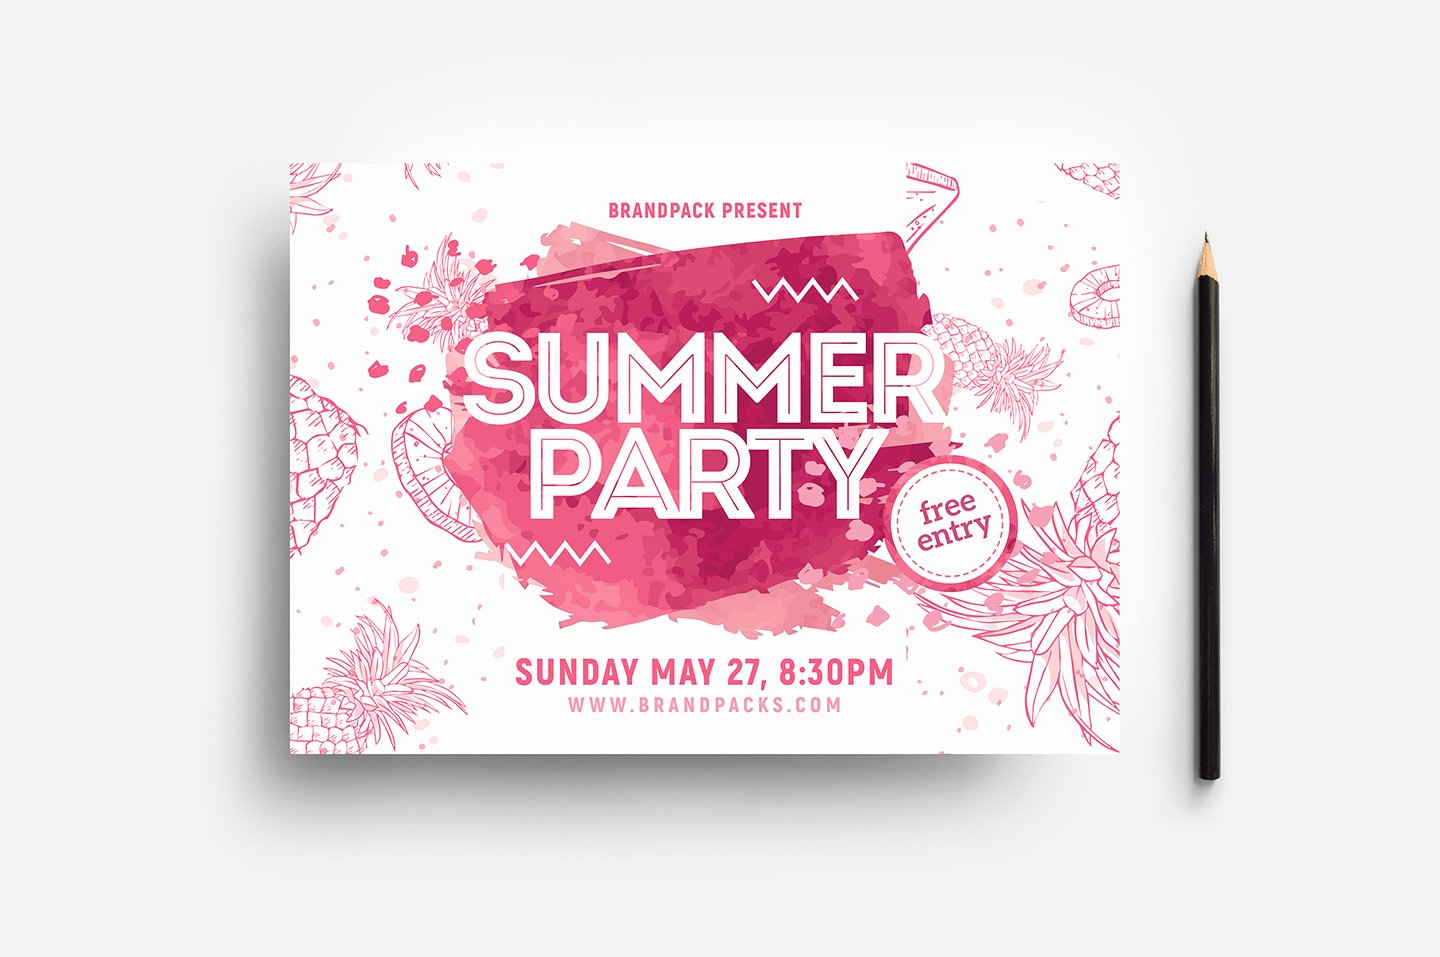 Summer Party Flyer Template Lovely Summer Party Flyer Template Psd Ai & Vector Brandpacks